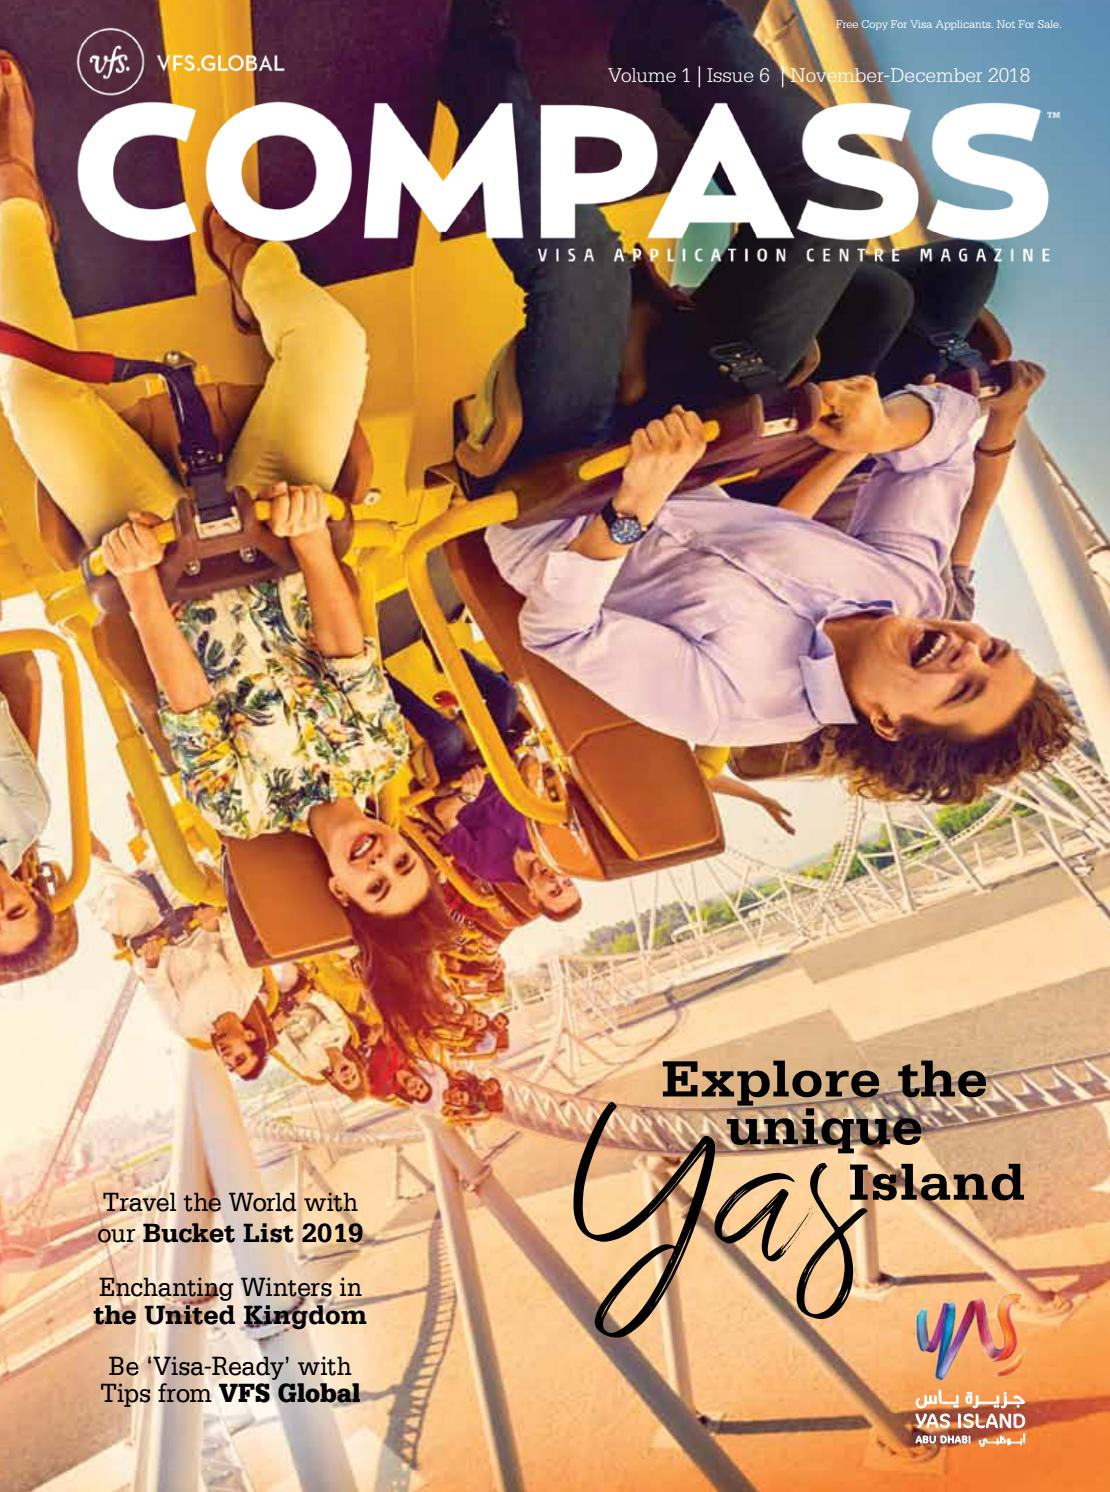 VFS Global COMPASS (UAE Edition) November - December 2018 by